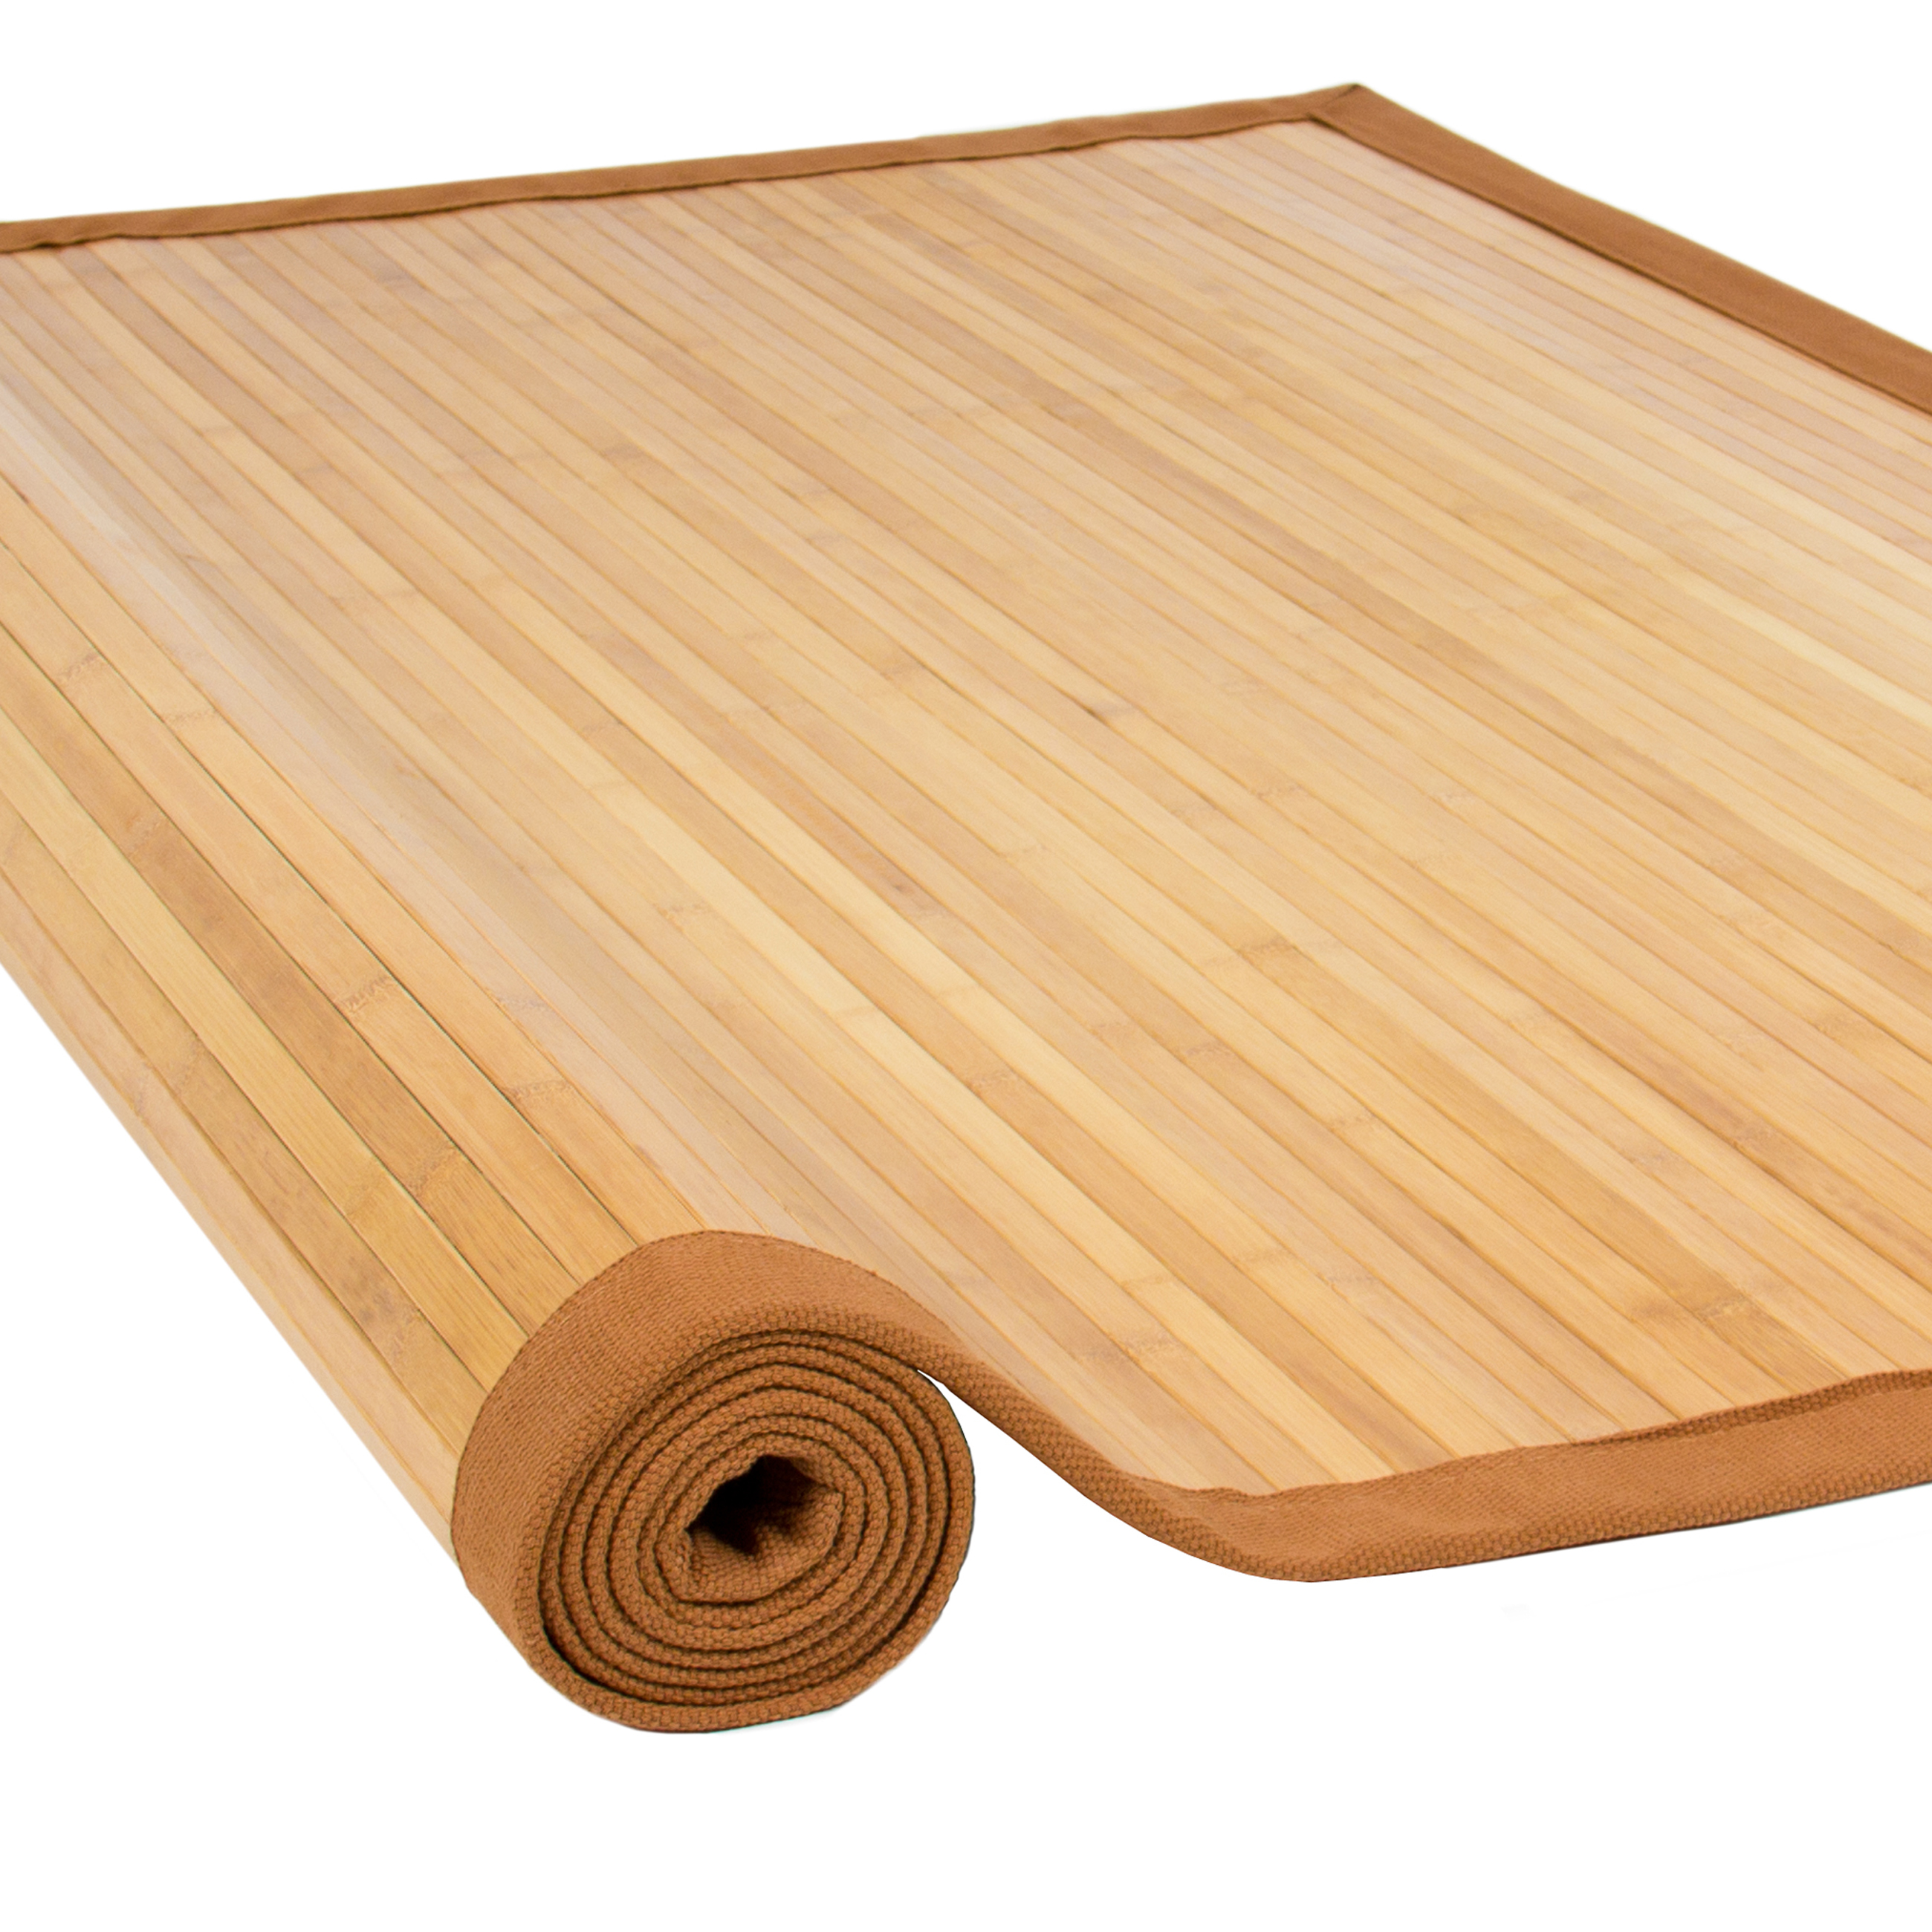 Best Choice Products Bamboo Area Rug Carpet Indoor 5u0027 X 8u0027 100% Natural  Bamboo Wood New   Walmart.com